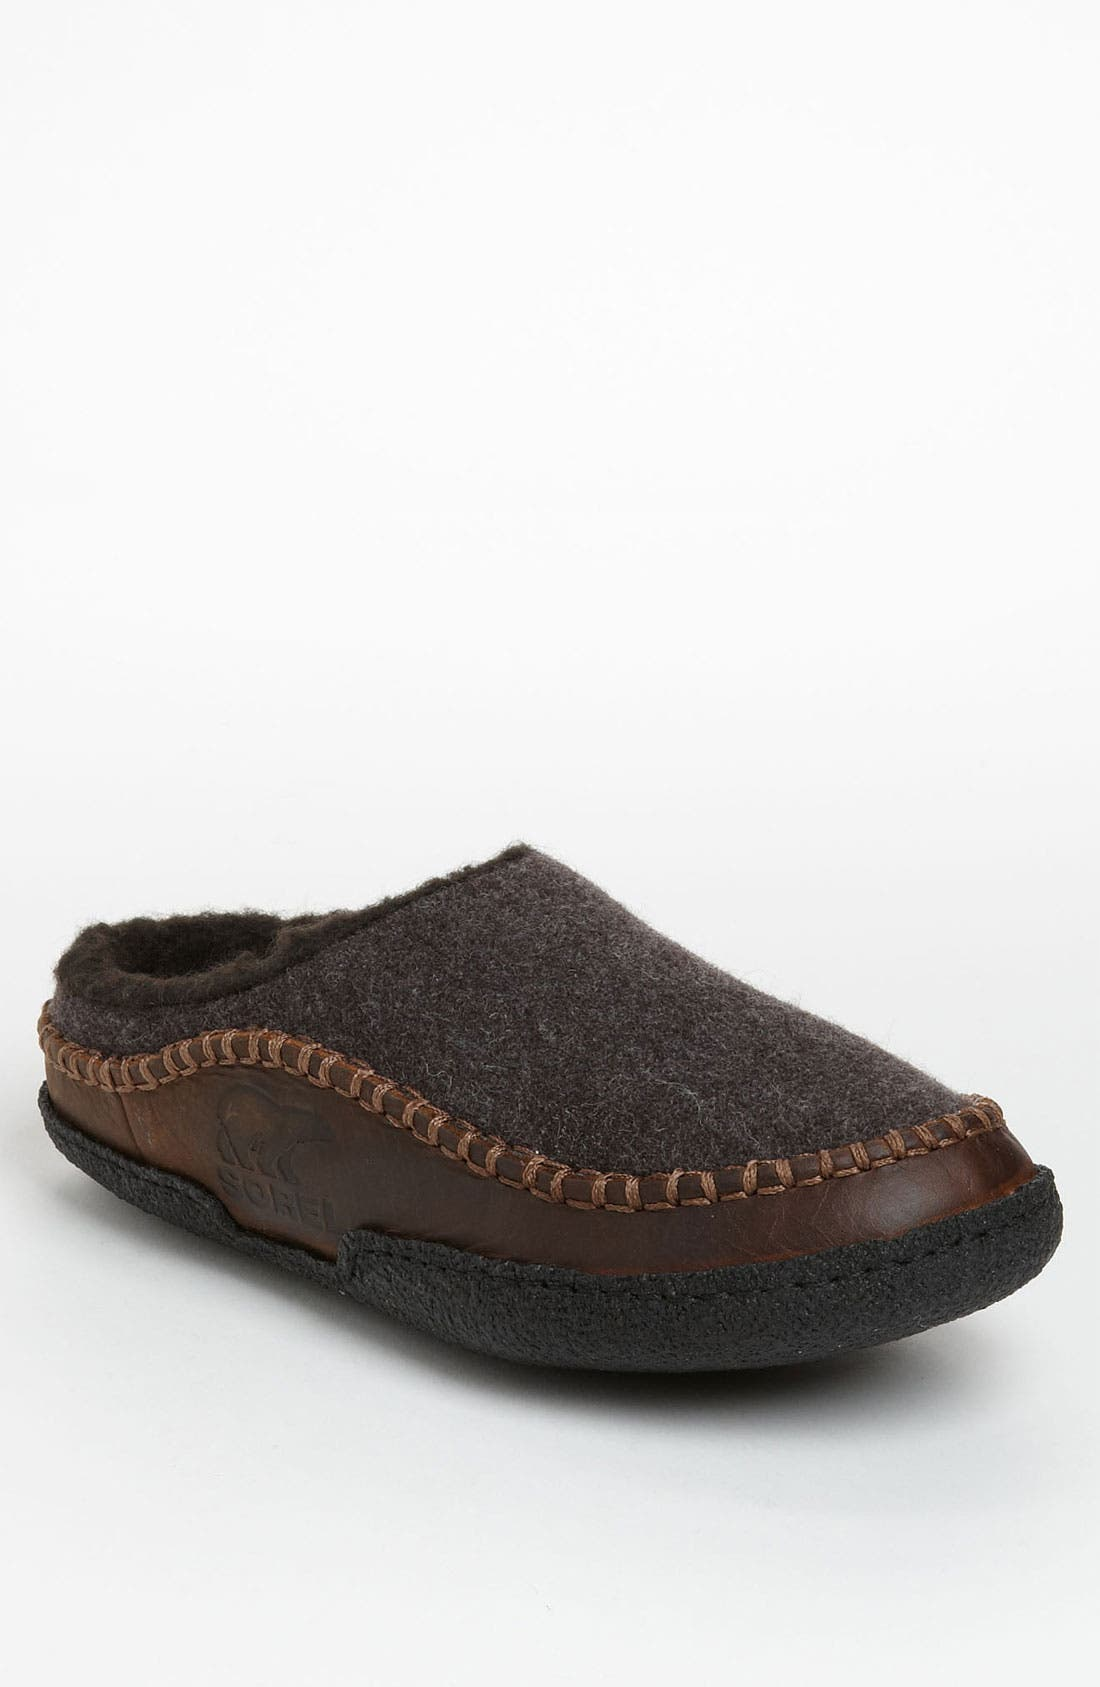 Main Image - Sorel 'Falcon Ridge' Slipper